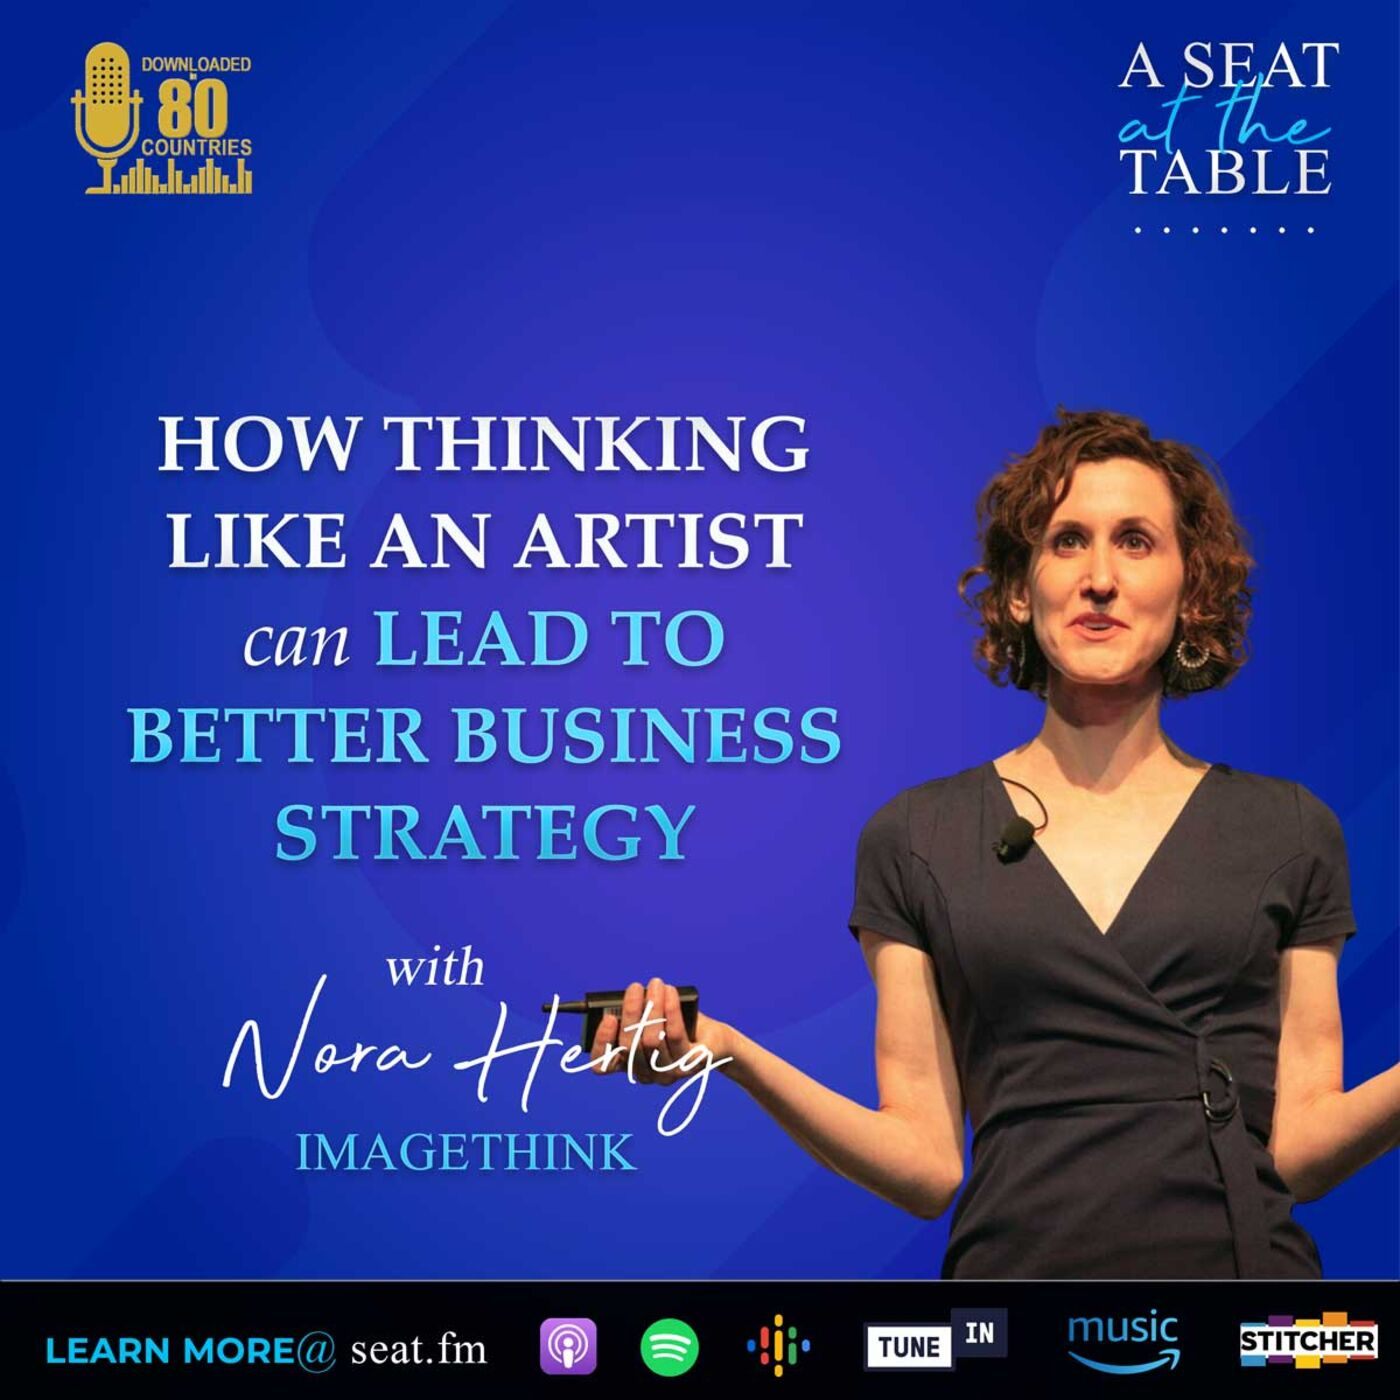 How Thinking Like an Artist Can Lead to Better Business Strategies